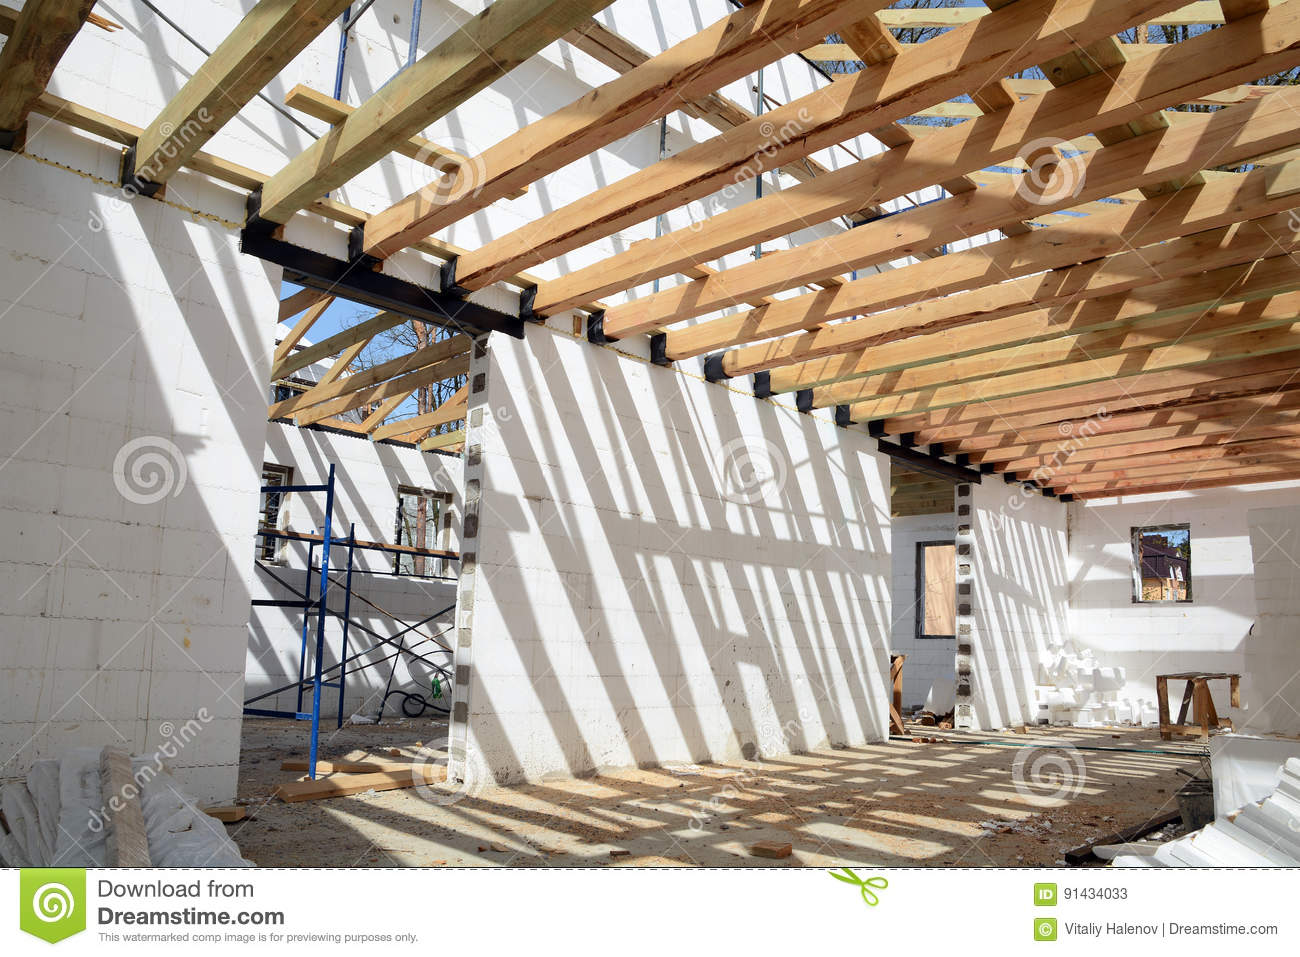 Download comp & The Wooden Structure Of The Building. Installation Of Wooden Beams ...